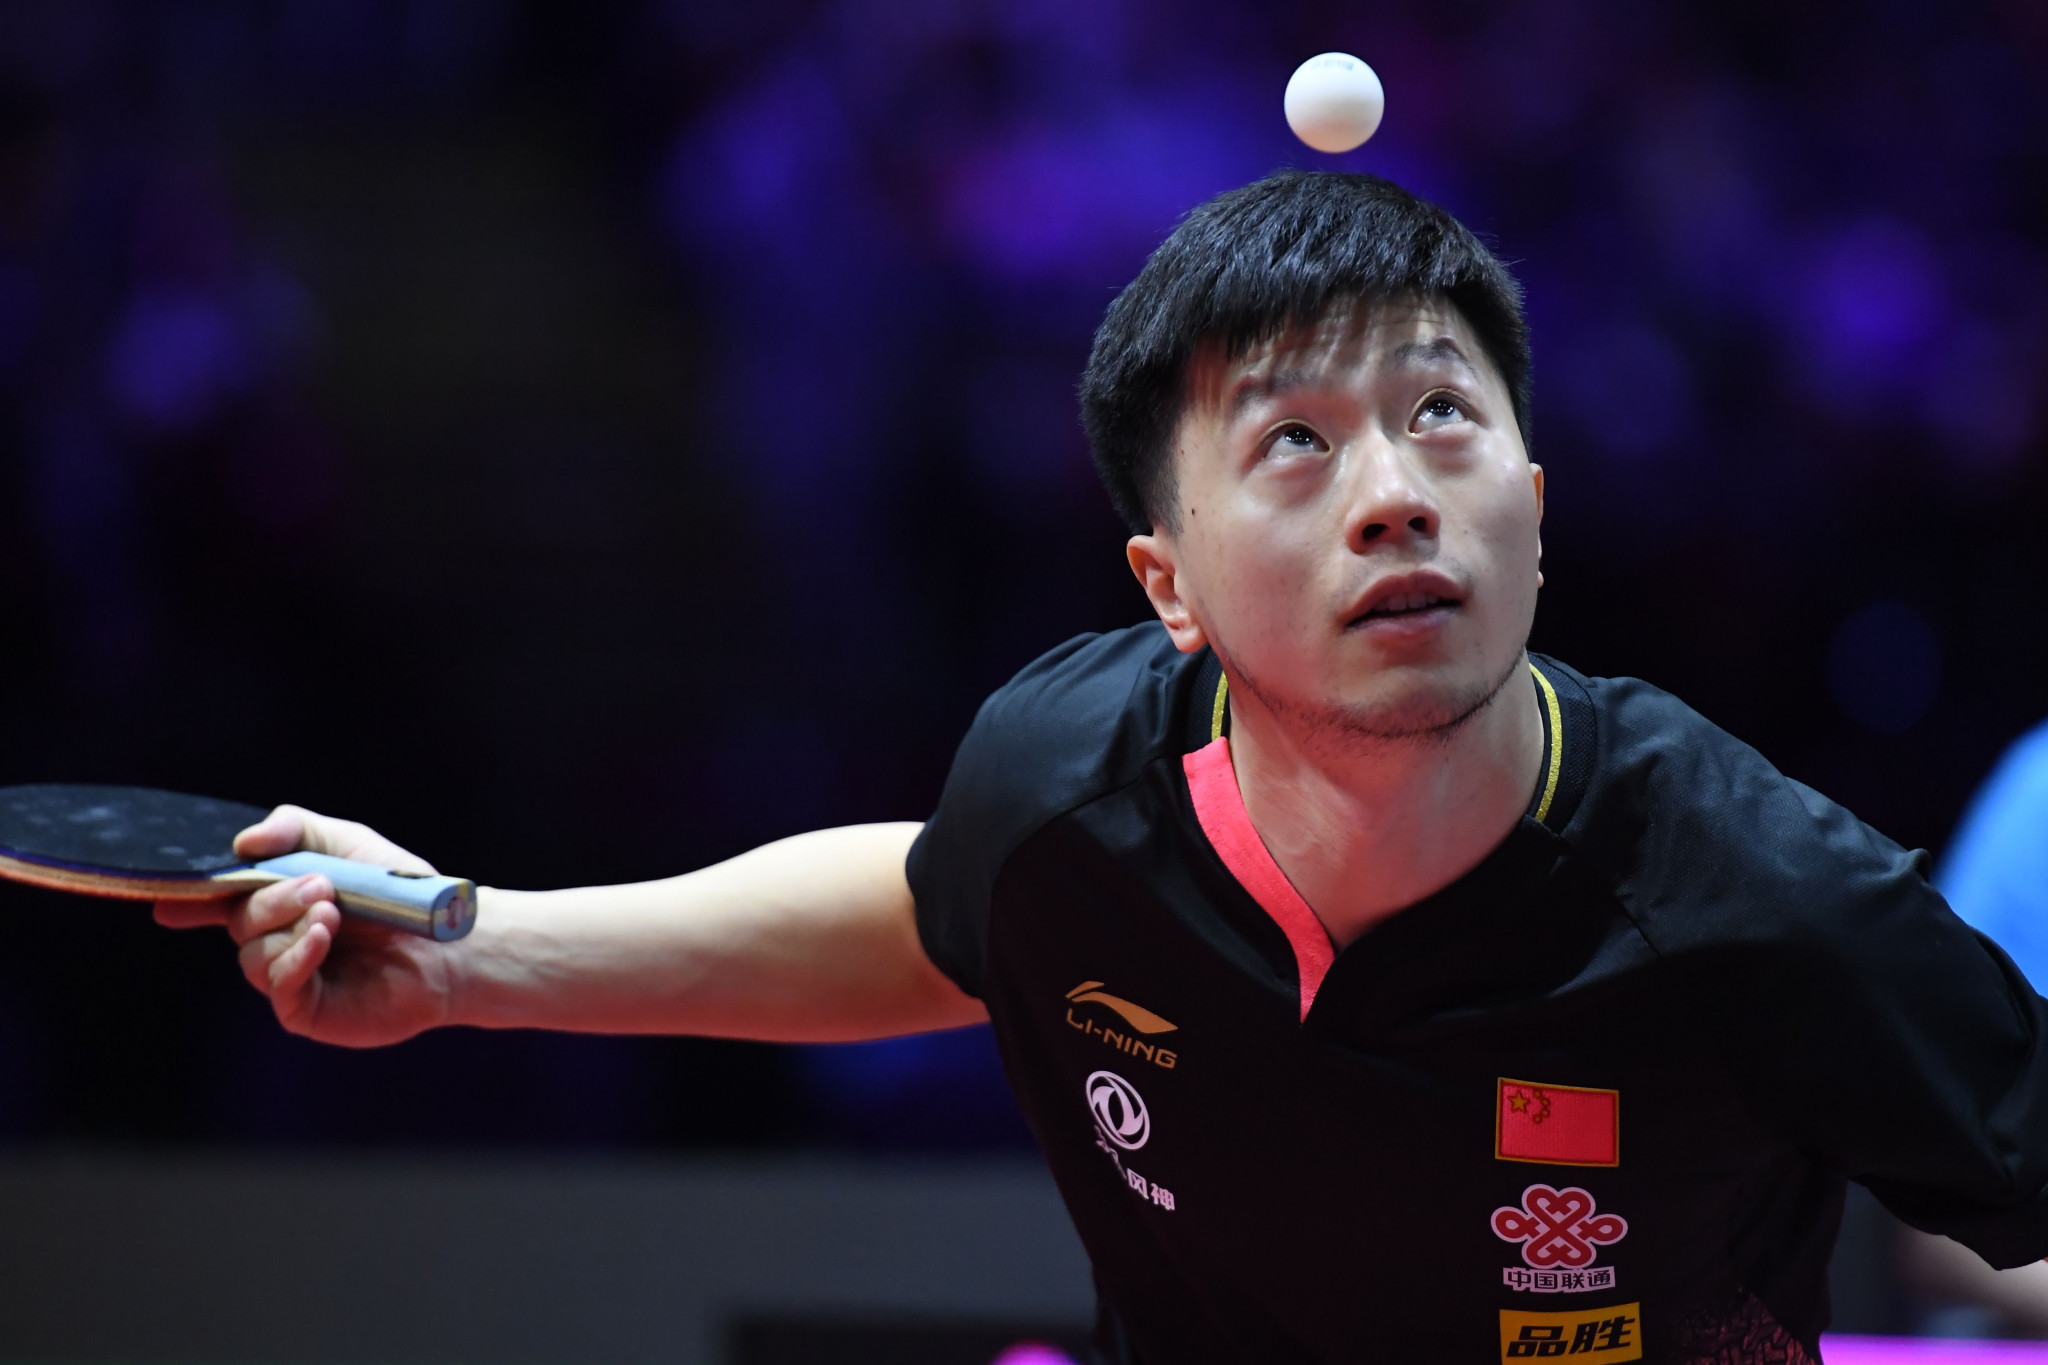 China's Ma Long set a new record for International Table Tennis Federation (ITTF) World Tour men's singles titles with victory at the China Open ©Getty Images